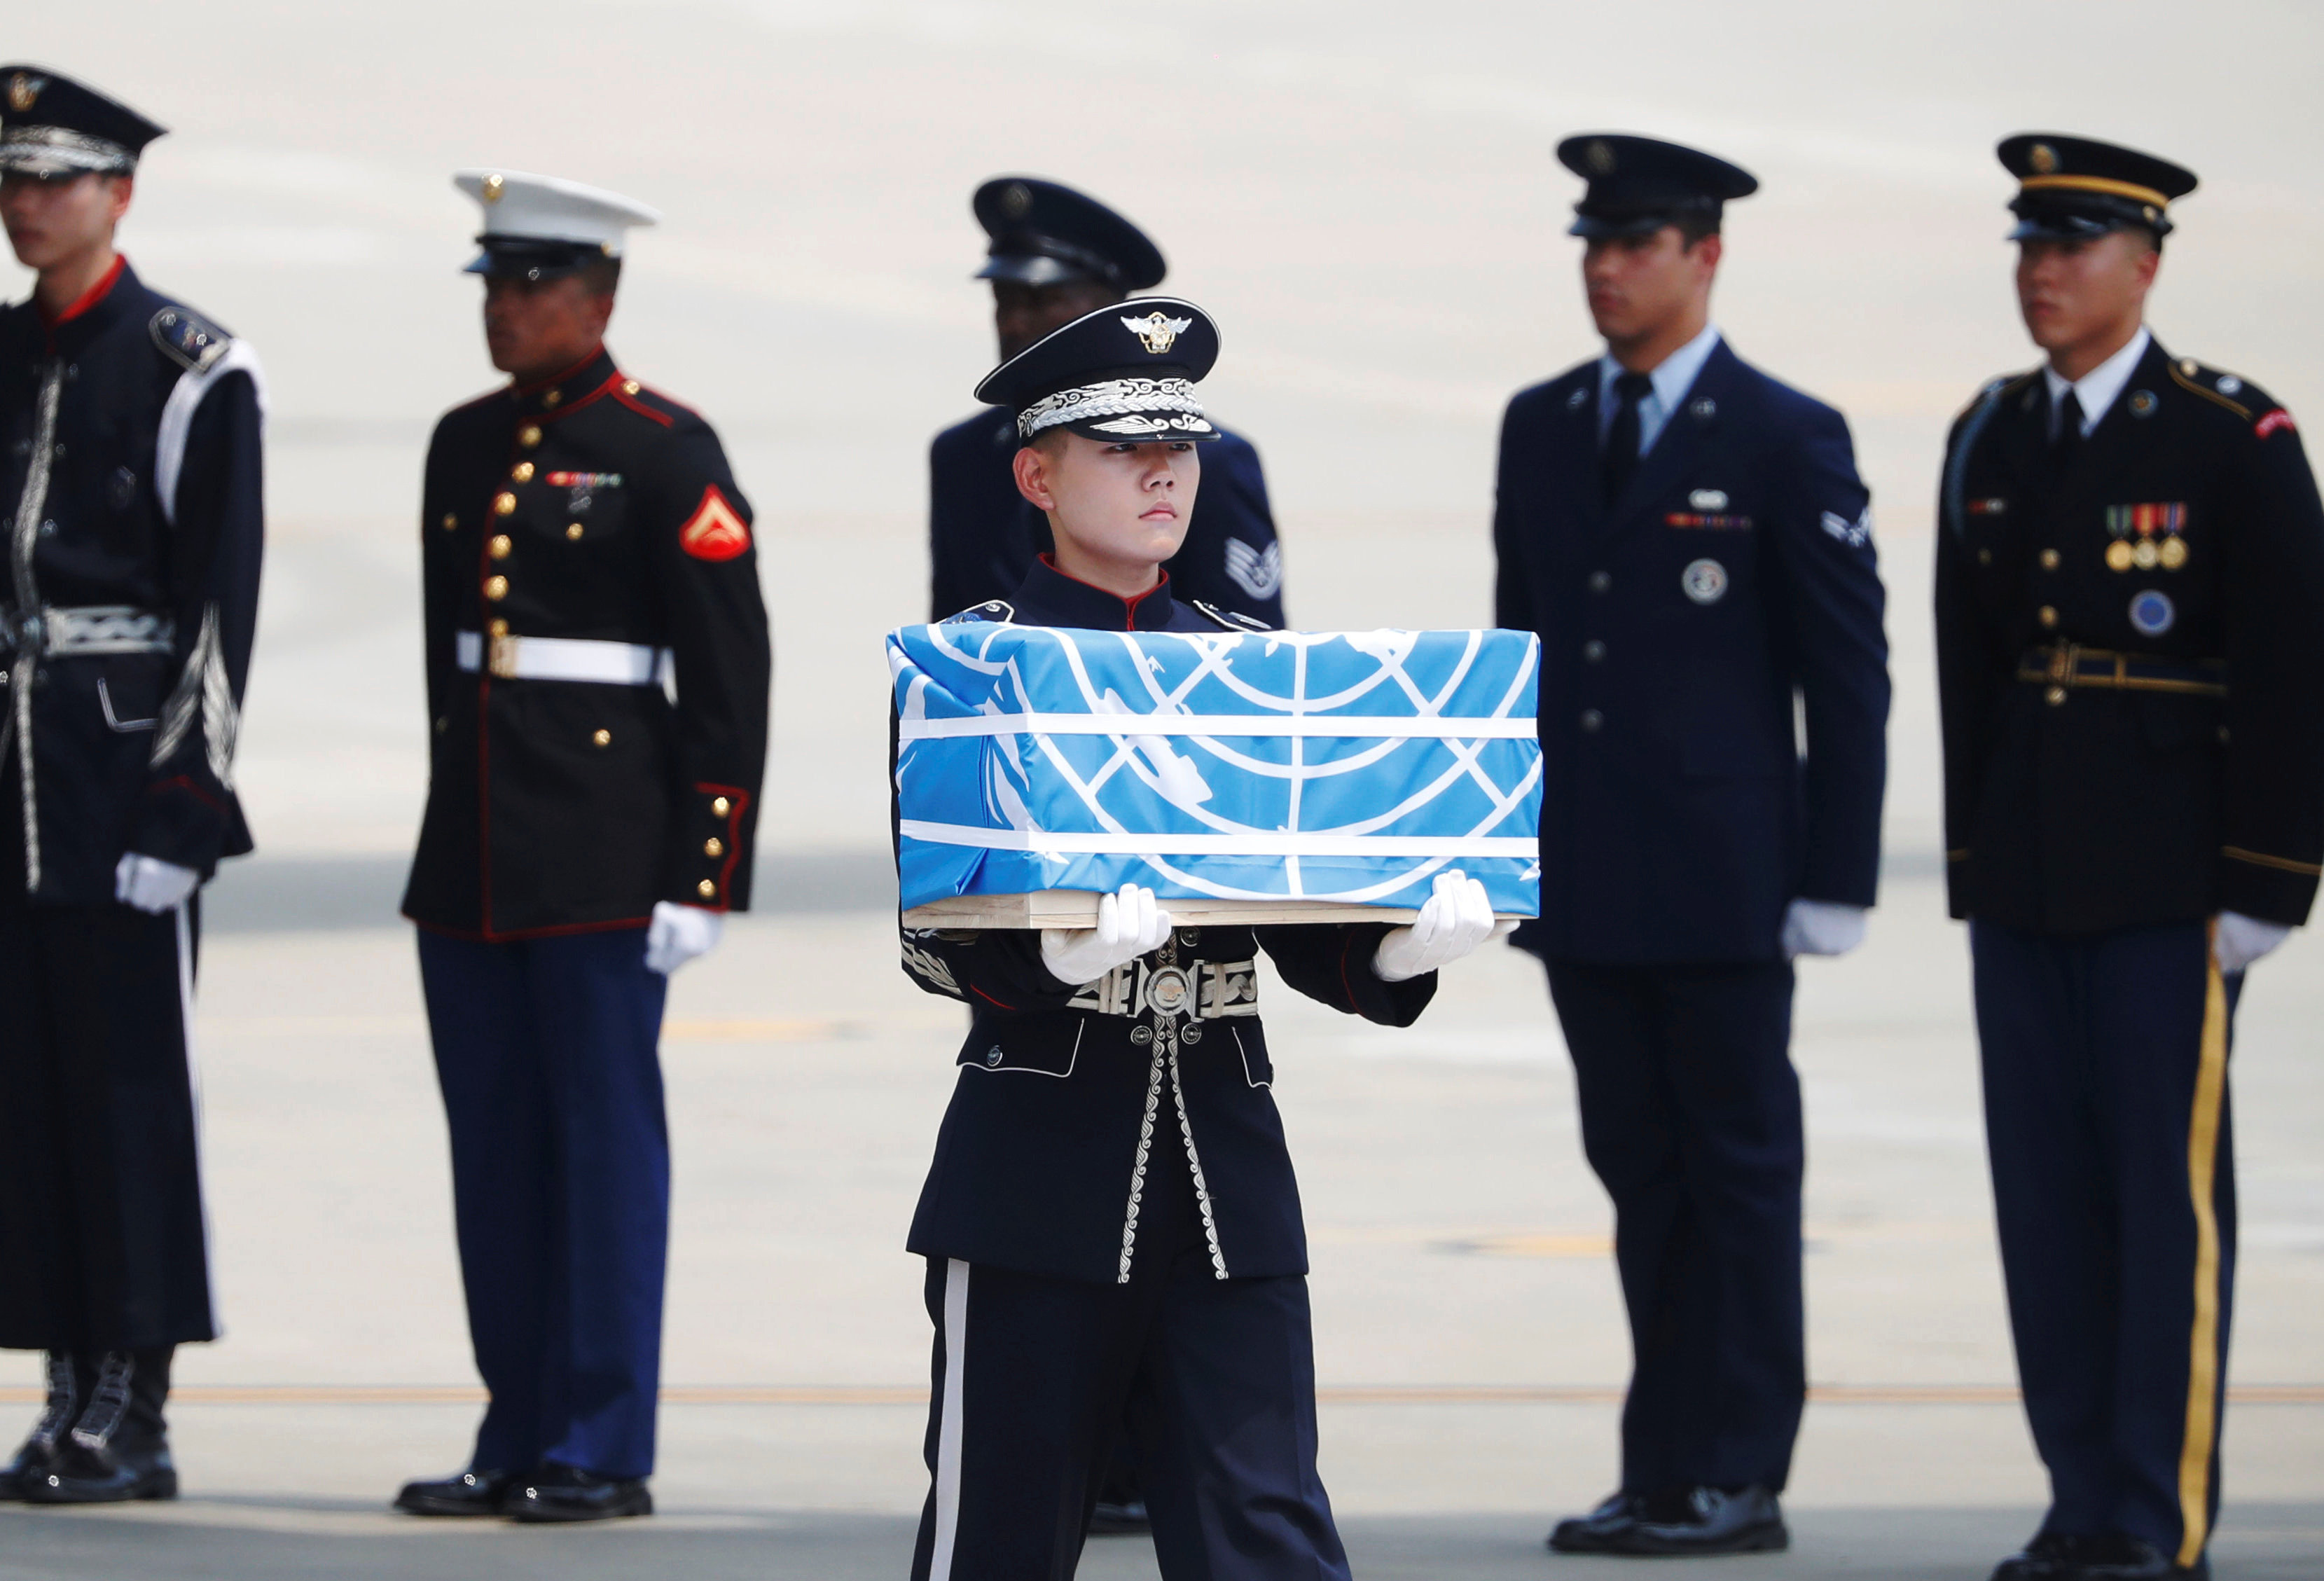 A soldier carries a casket containing the remains of a U.S. soldier who was killed in the Korean War during a ceremony at Osan Air Base in Pyeongtaek, South Korea, July 27, 2018. REUTERS/Kim Hong-Ji/Pool